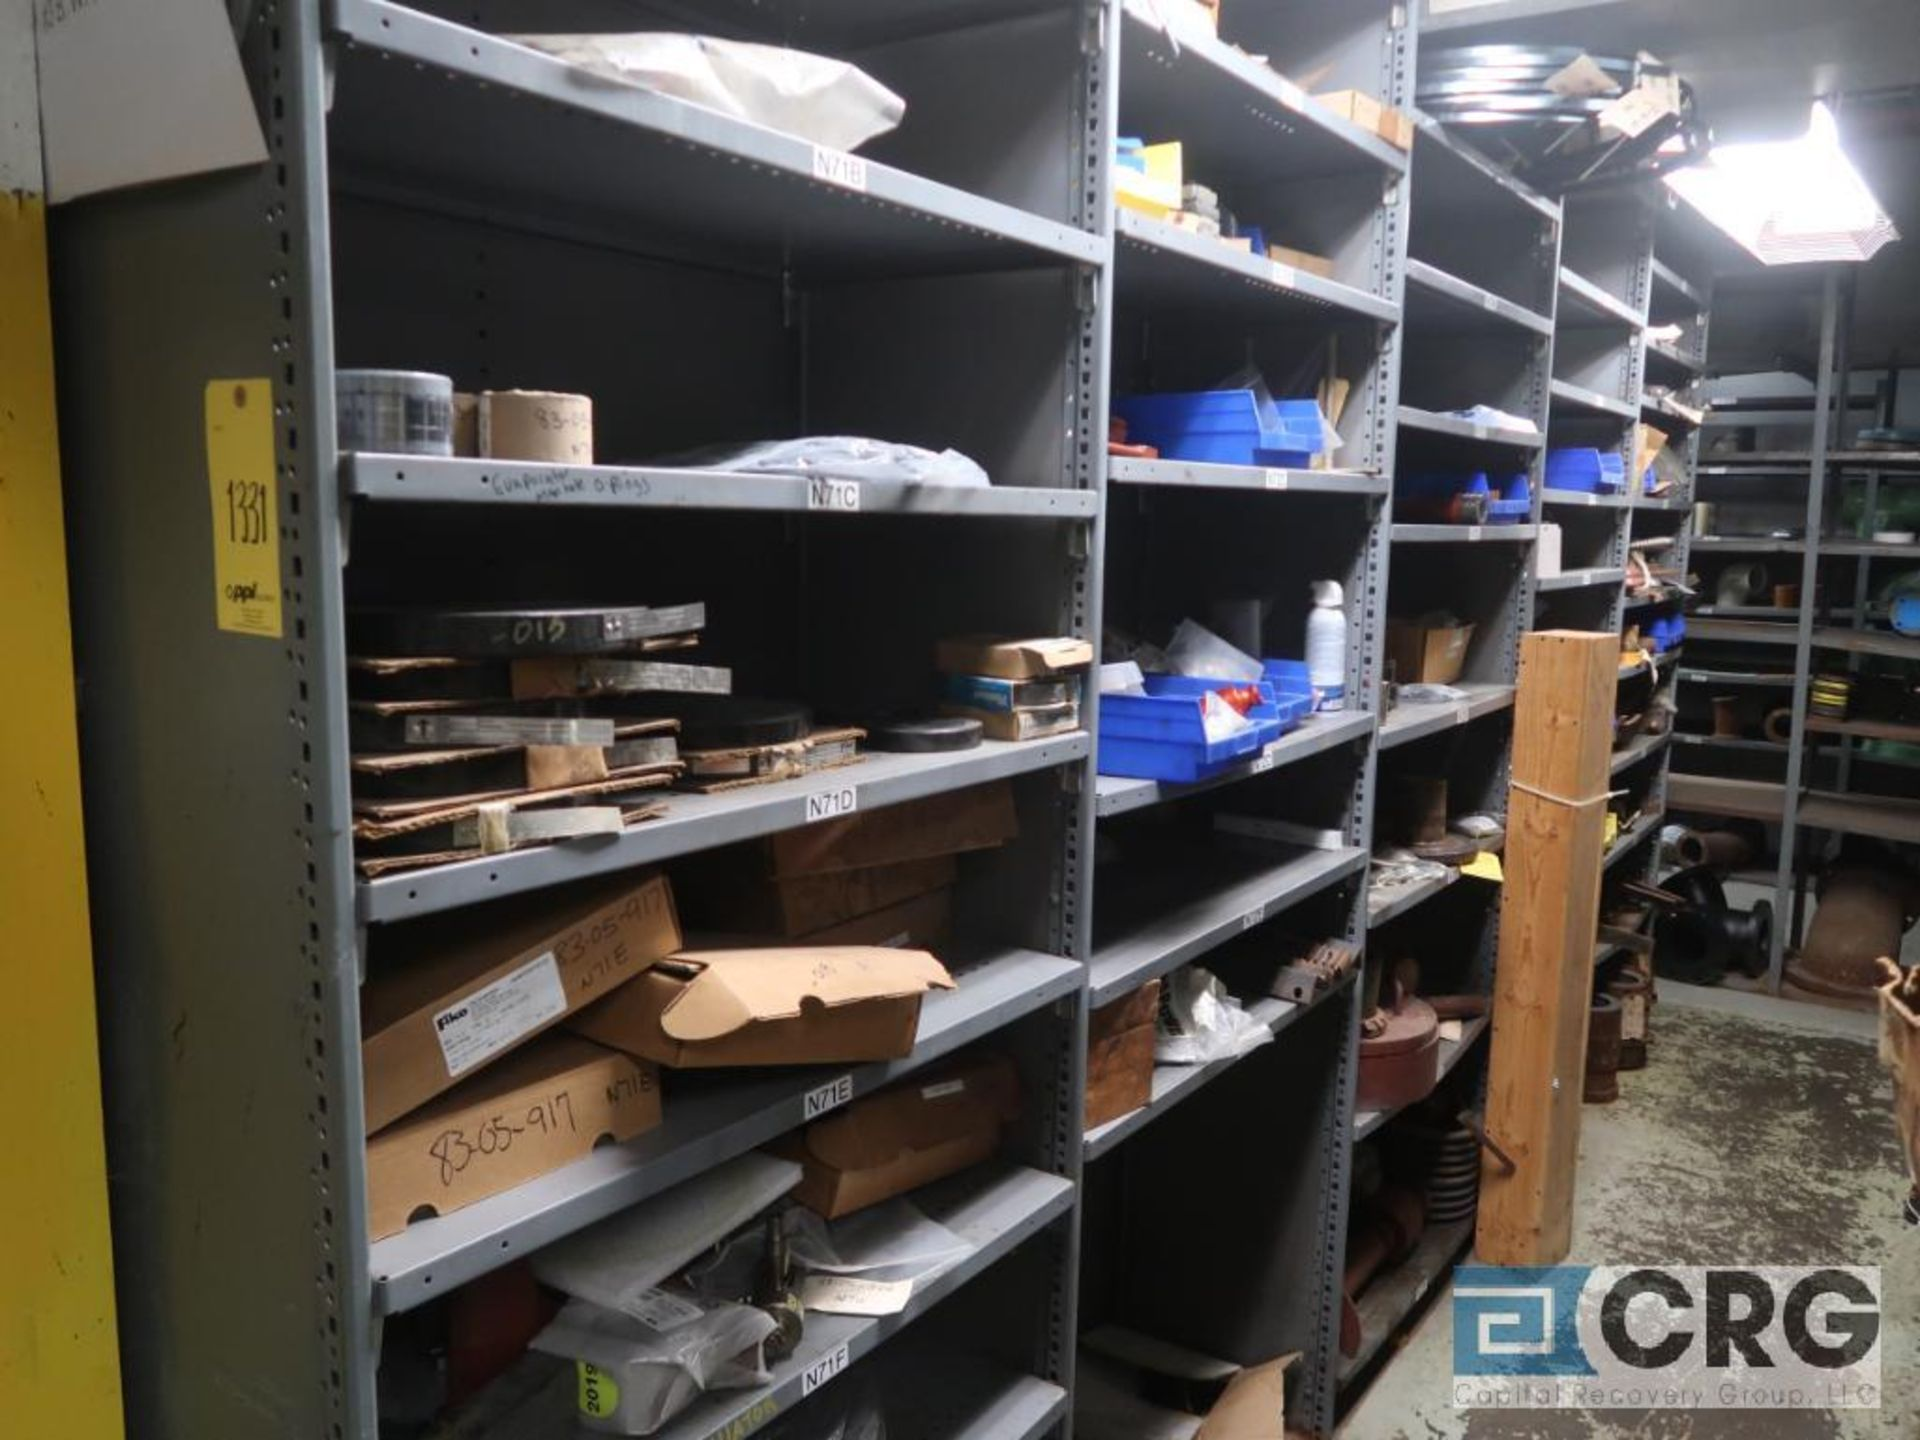 Lot of (35) sections with assorted parts including gaskets, fittings, shaft pins, gears, and - Image 17 of 17